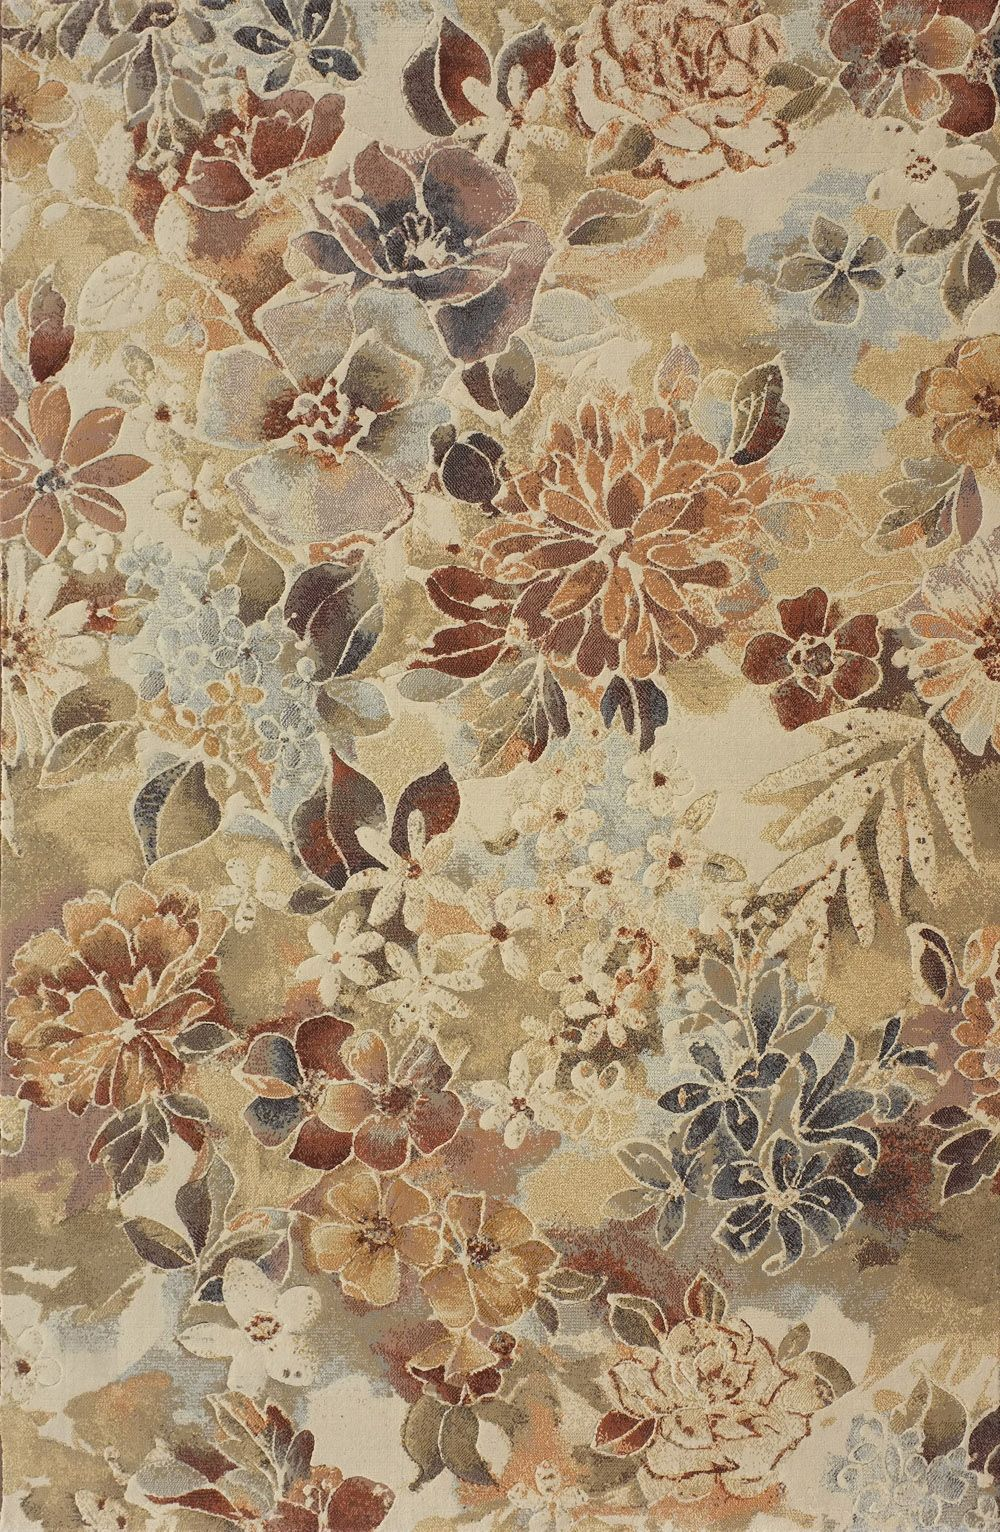 79145 4848 Carpet Flooring Prints Printing On Fabric